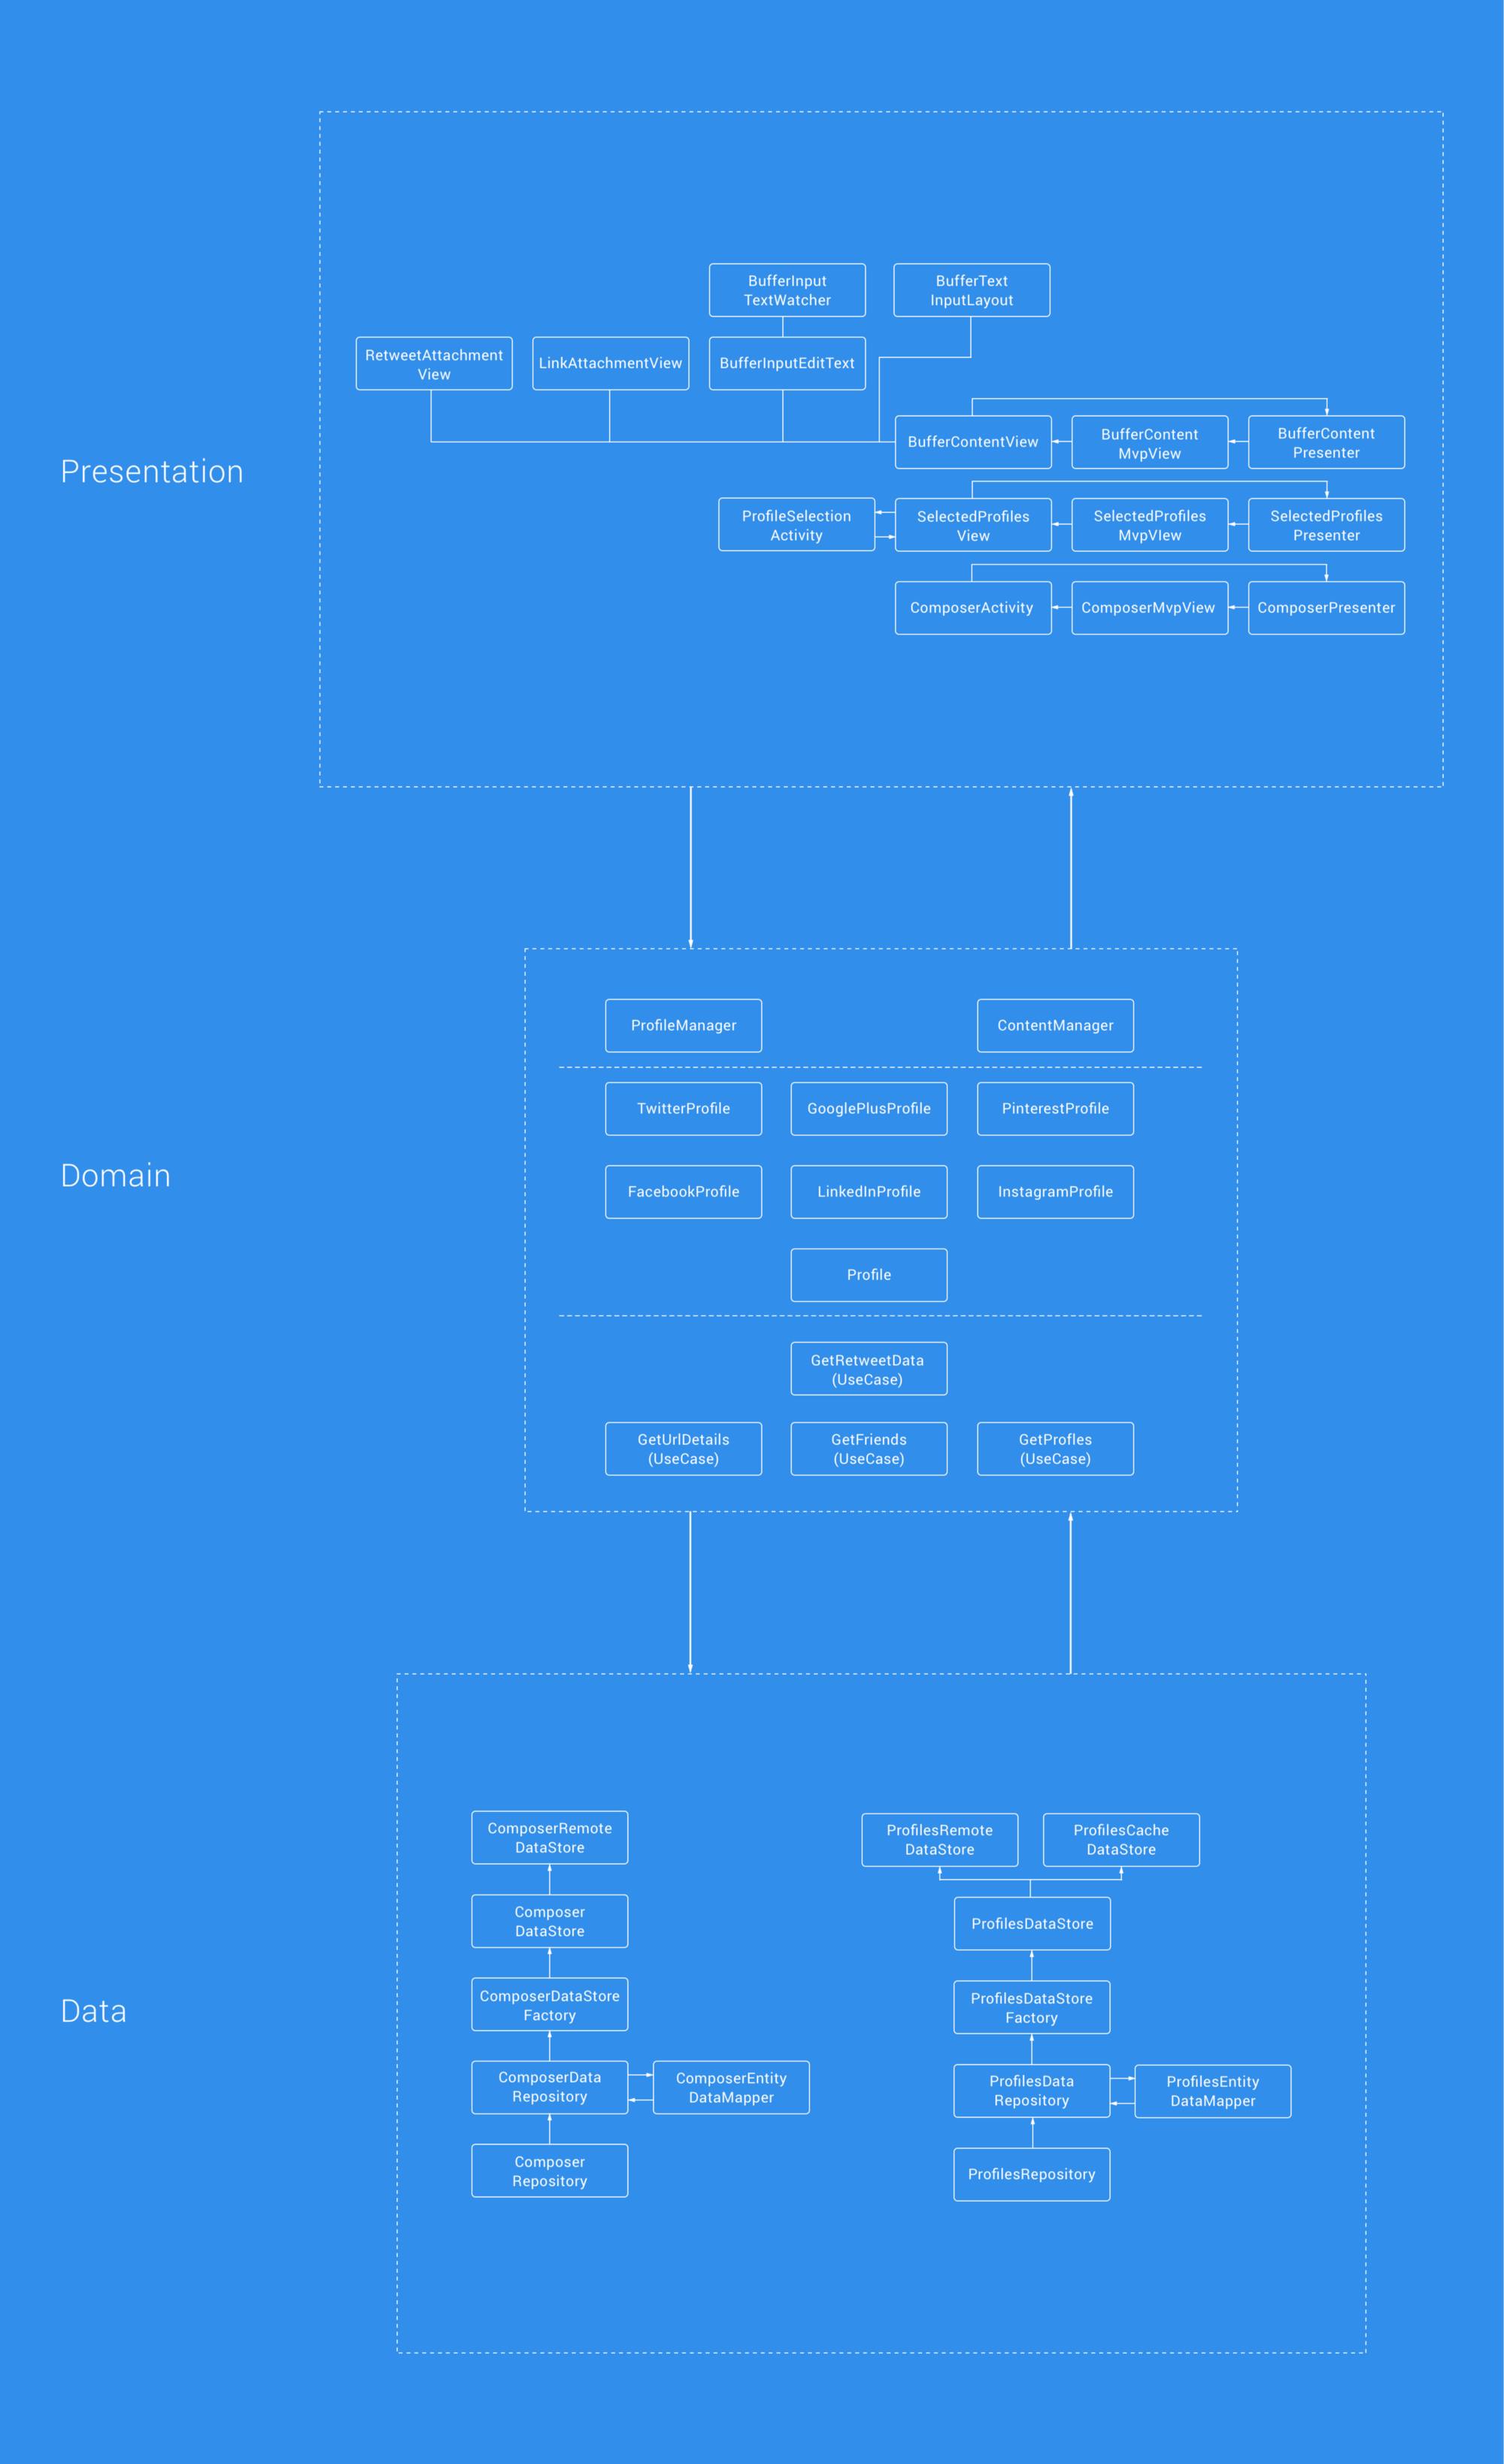 As We Previously Mentioned, This Clean Architecture Approach Layers Our  Application Into Three Different Layers The Image Above Demonstrates Now  How We've